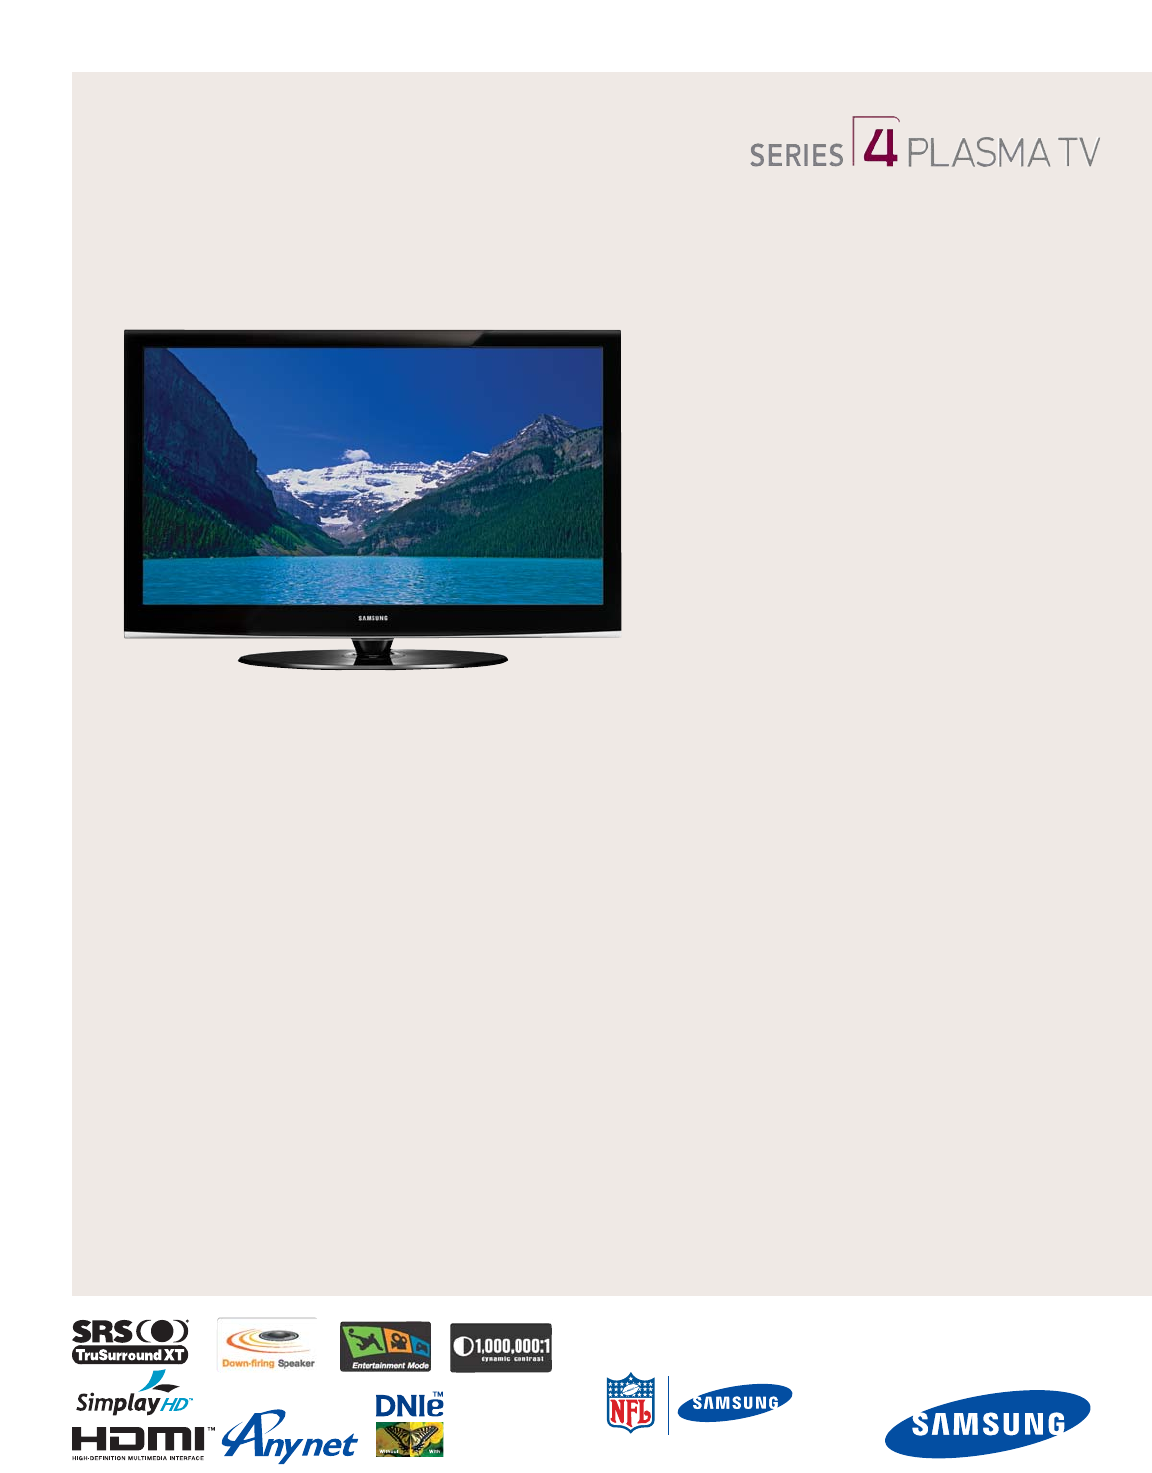 samsung flat panel television pn42a450 user guide manualsonline com Samsung Phones Owner's Manual Samsung Phones Owner's Manual